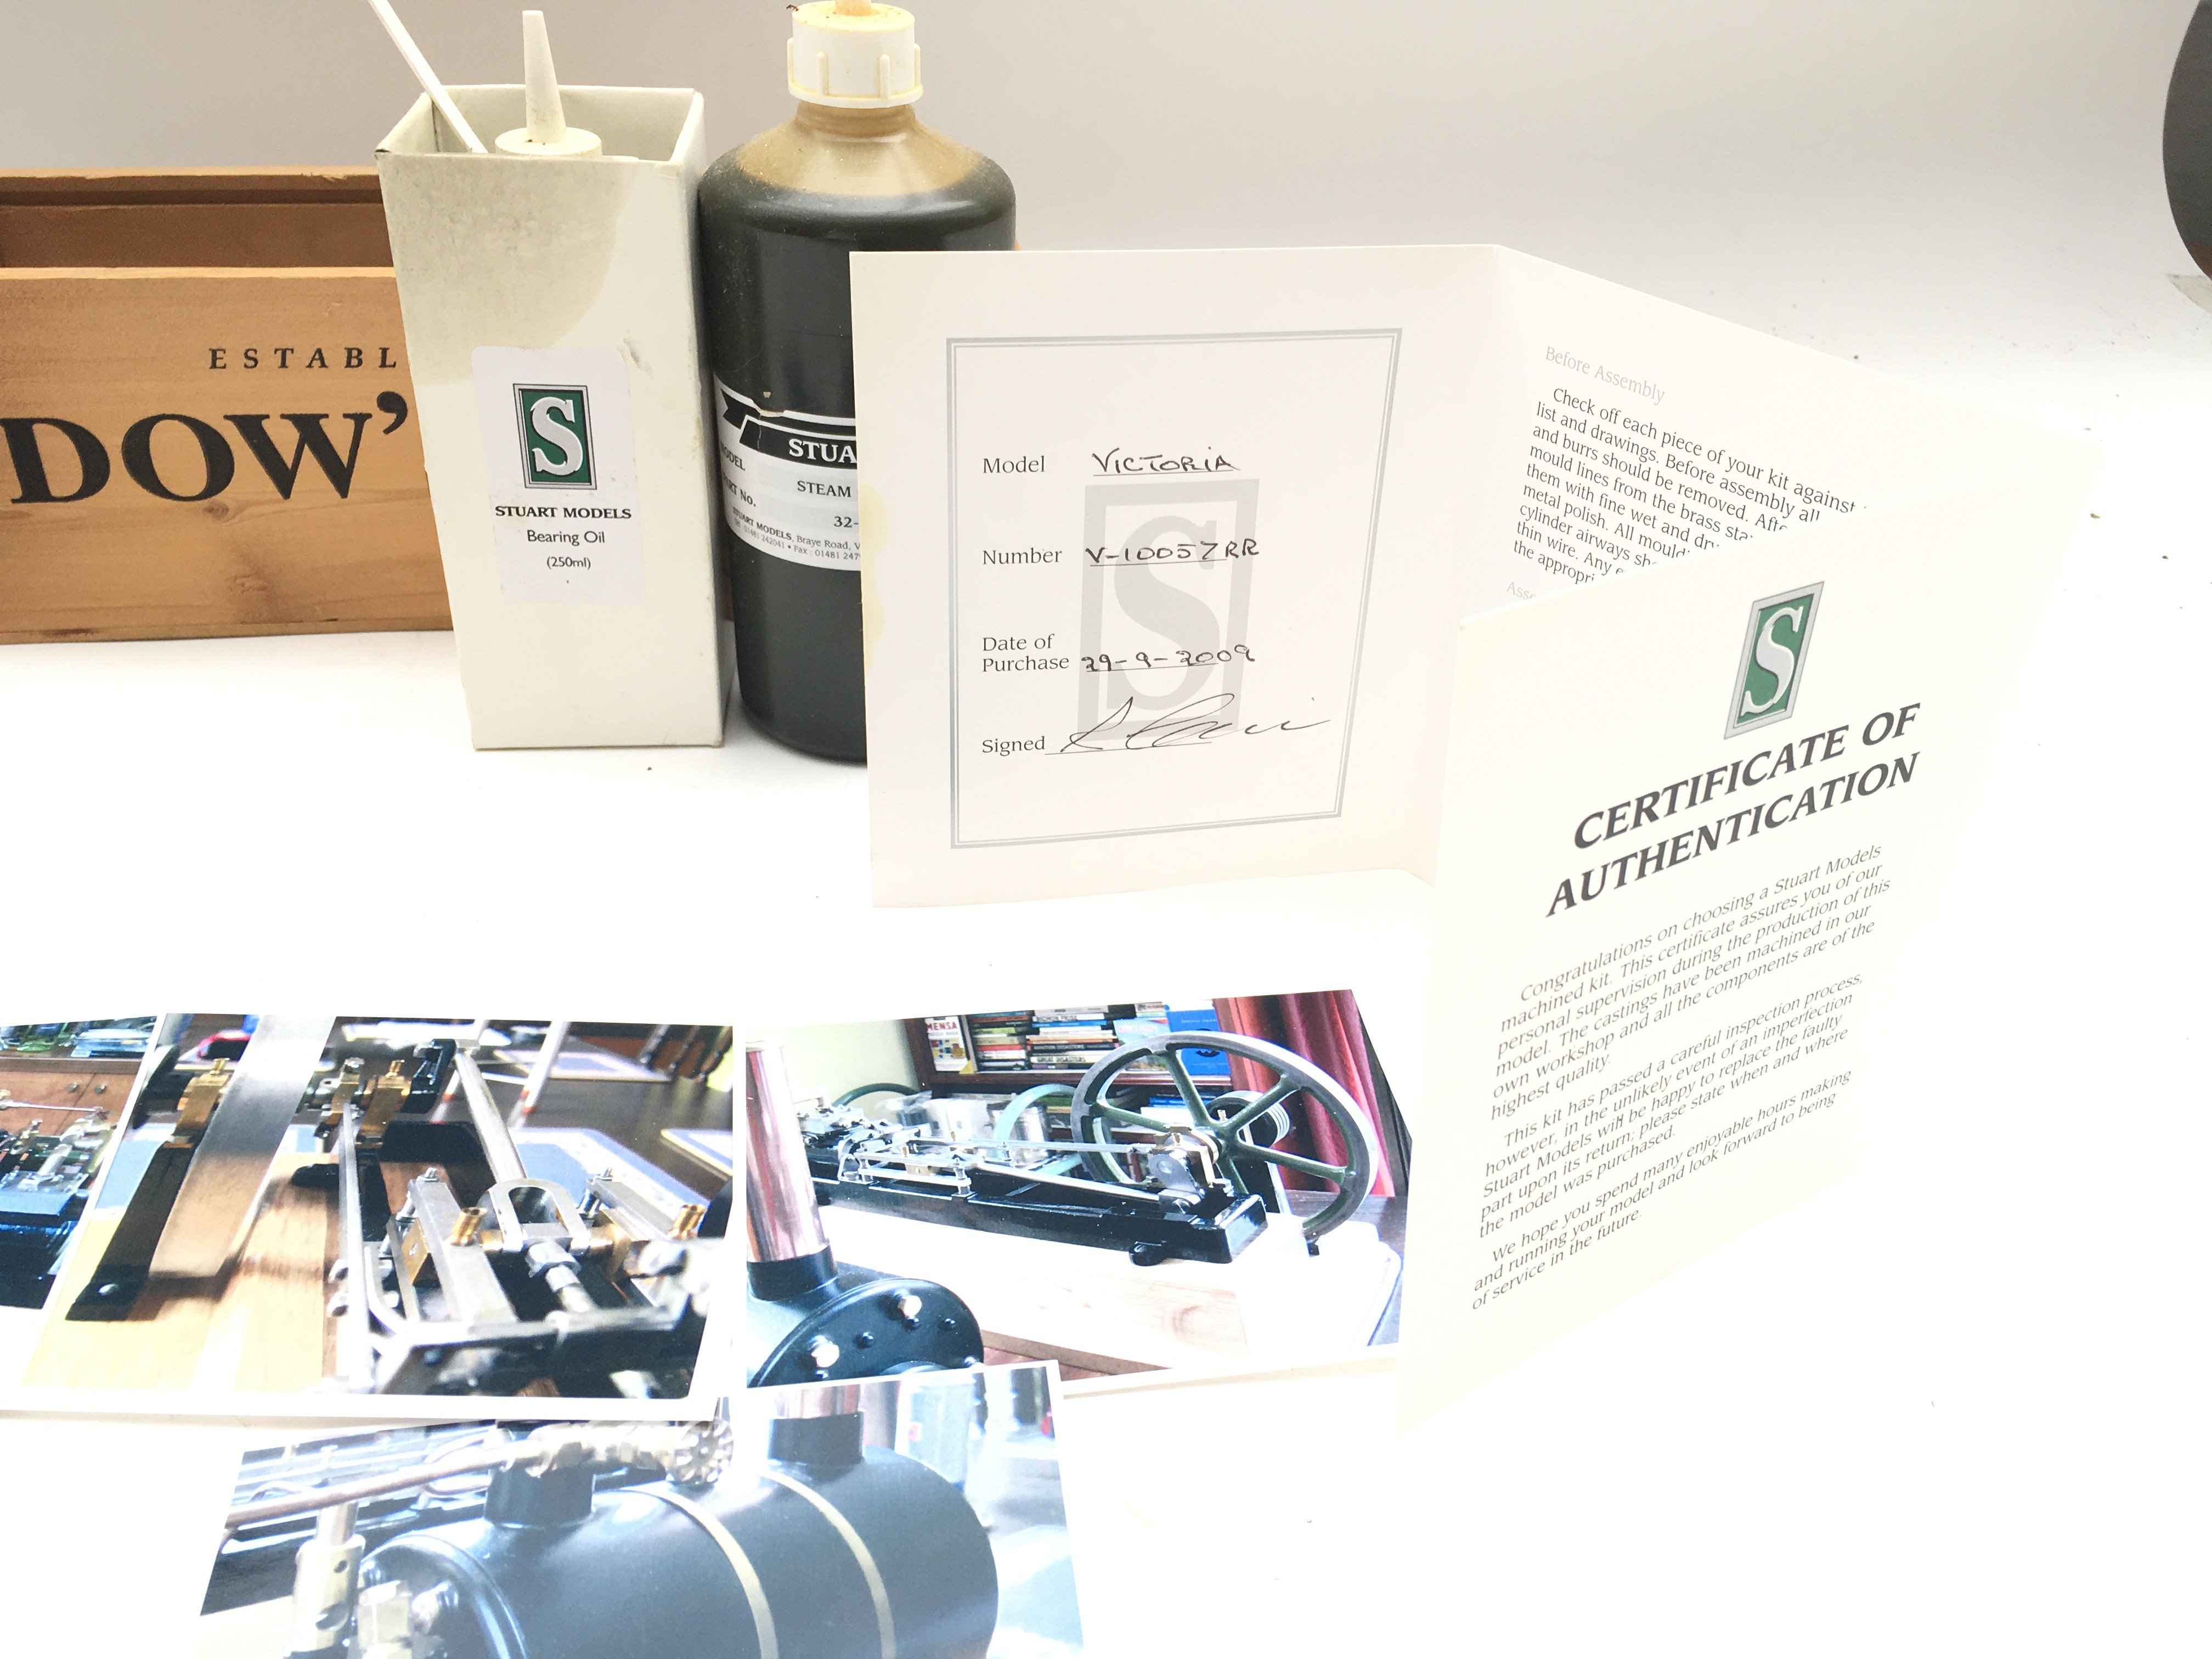 A Stuart Models Steam Engine including Feed Pump & Reservoir. Includes oils and certificate of - Image 4 of 5